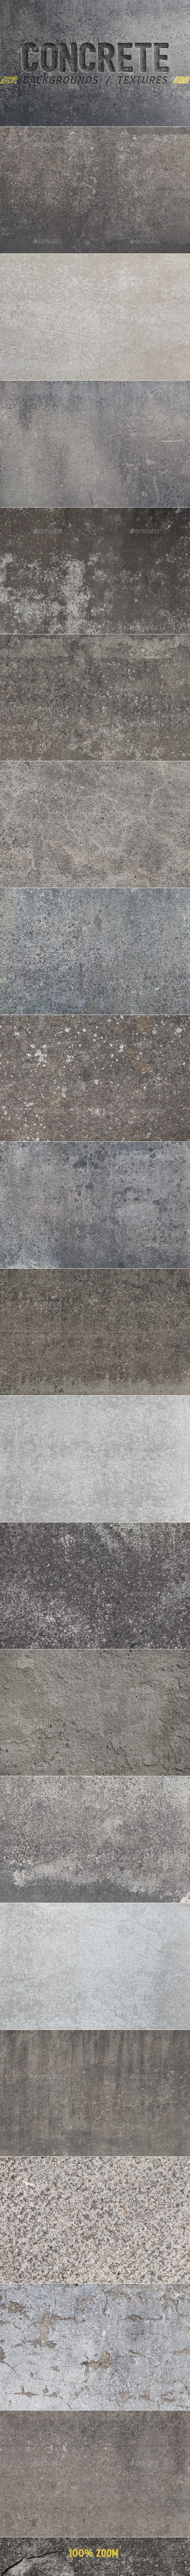 20 Concrete Backgrounds / Textures - Concrete Textures